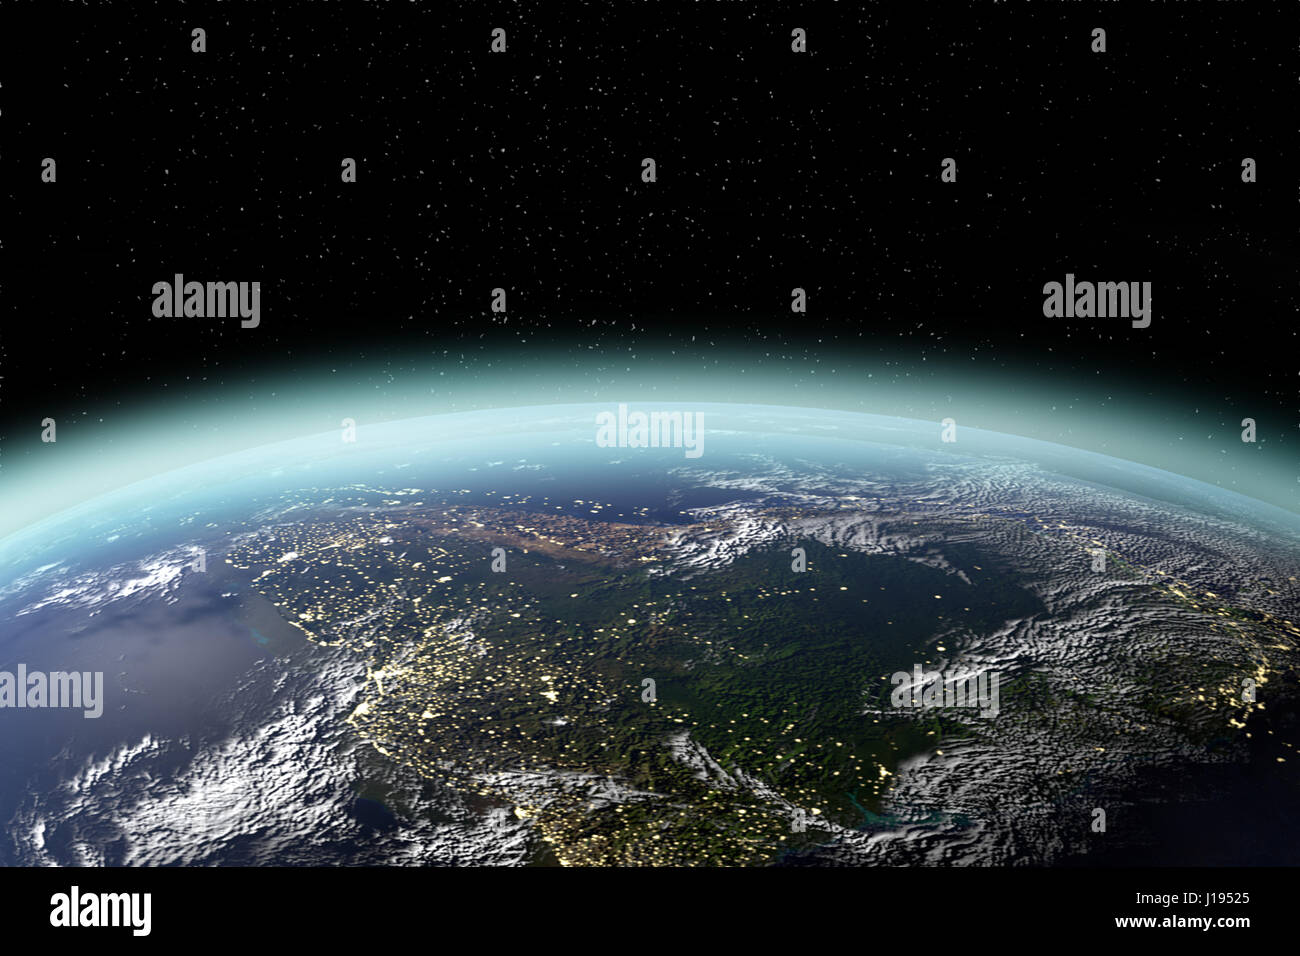 View of planet earth from space in 3D rendering. Elements of this image furnished by NASA - Stock Image